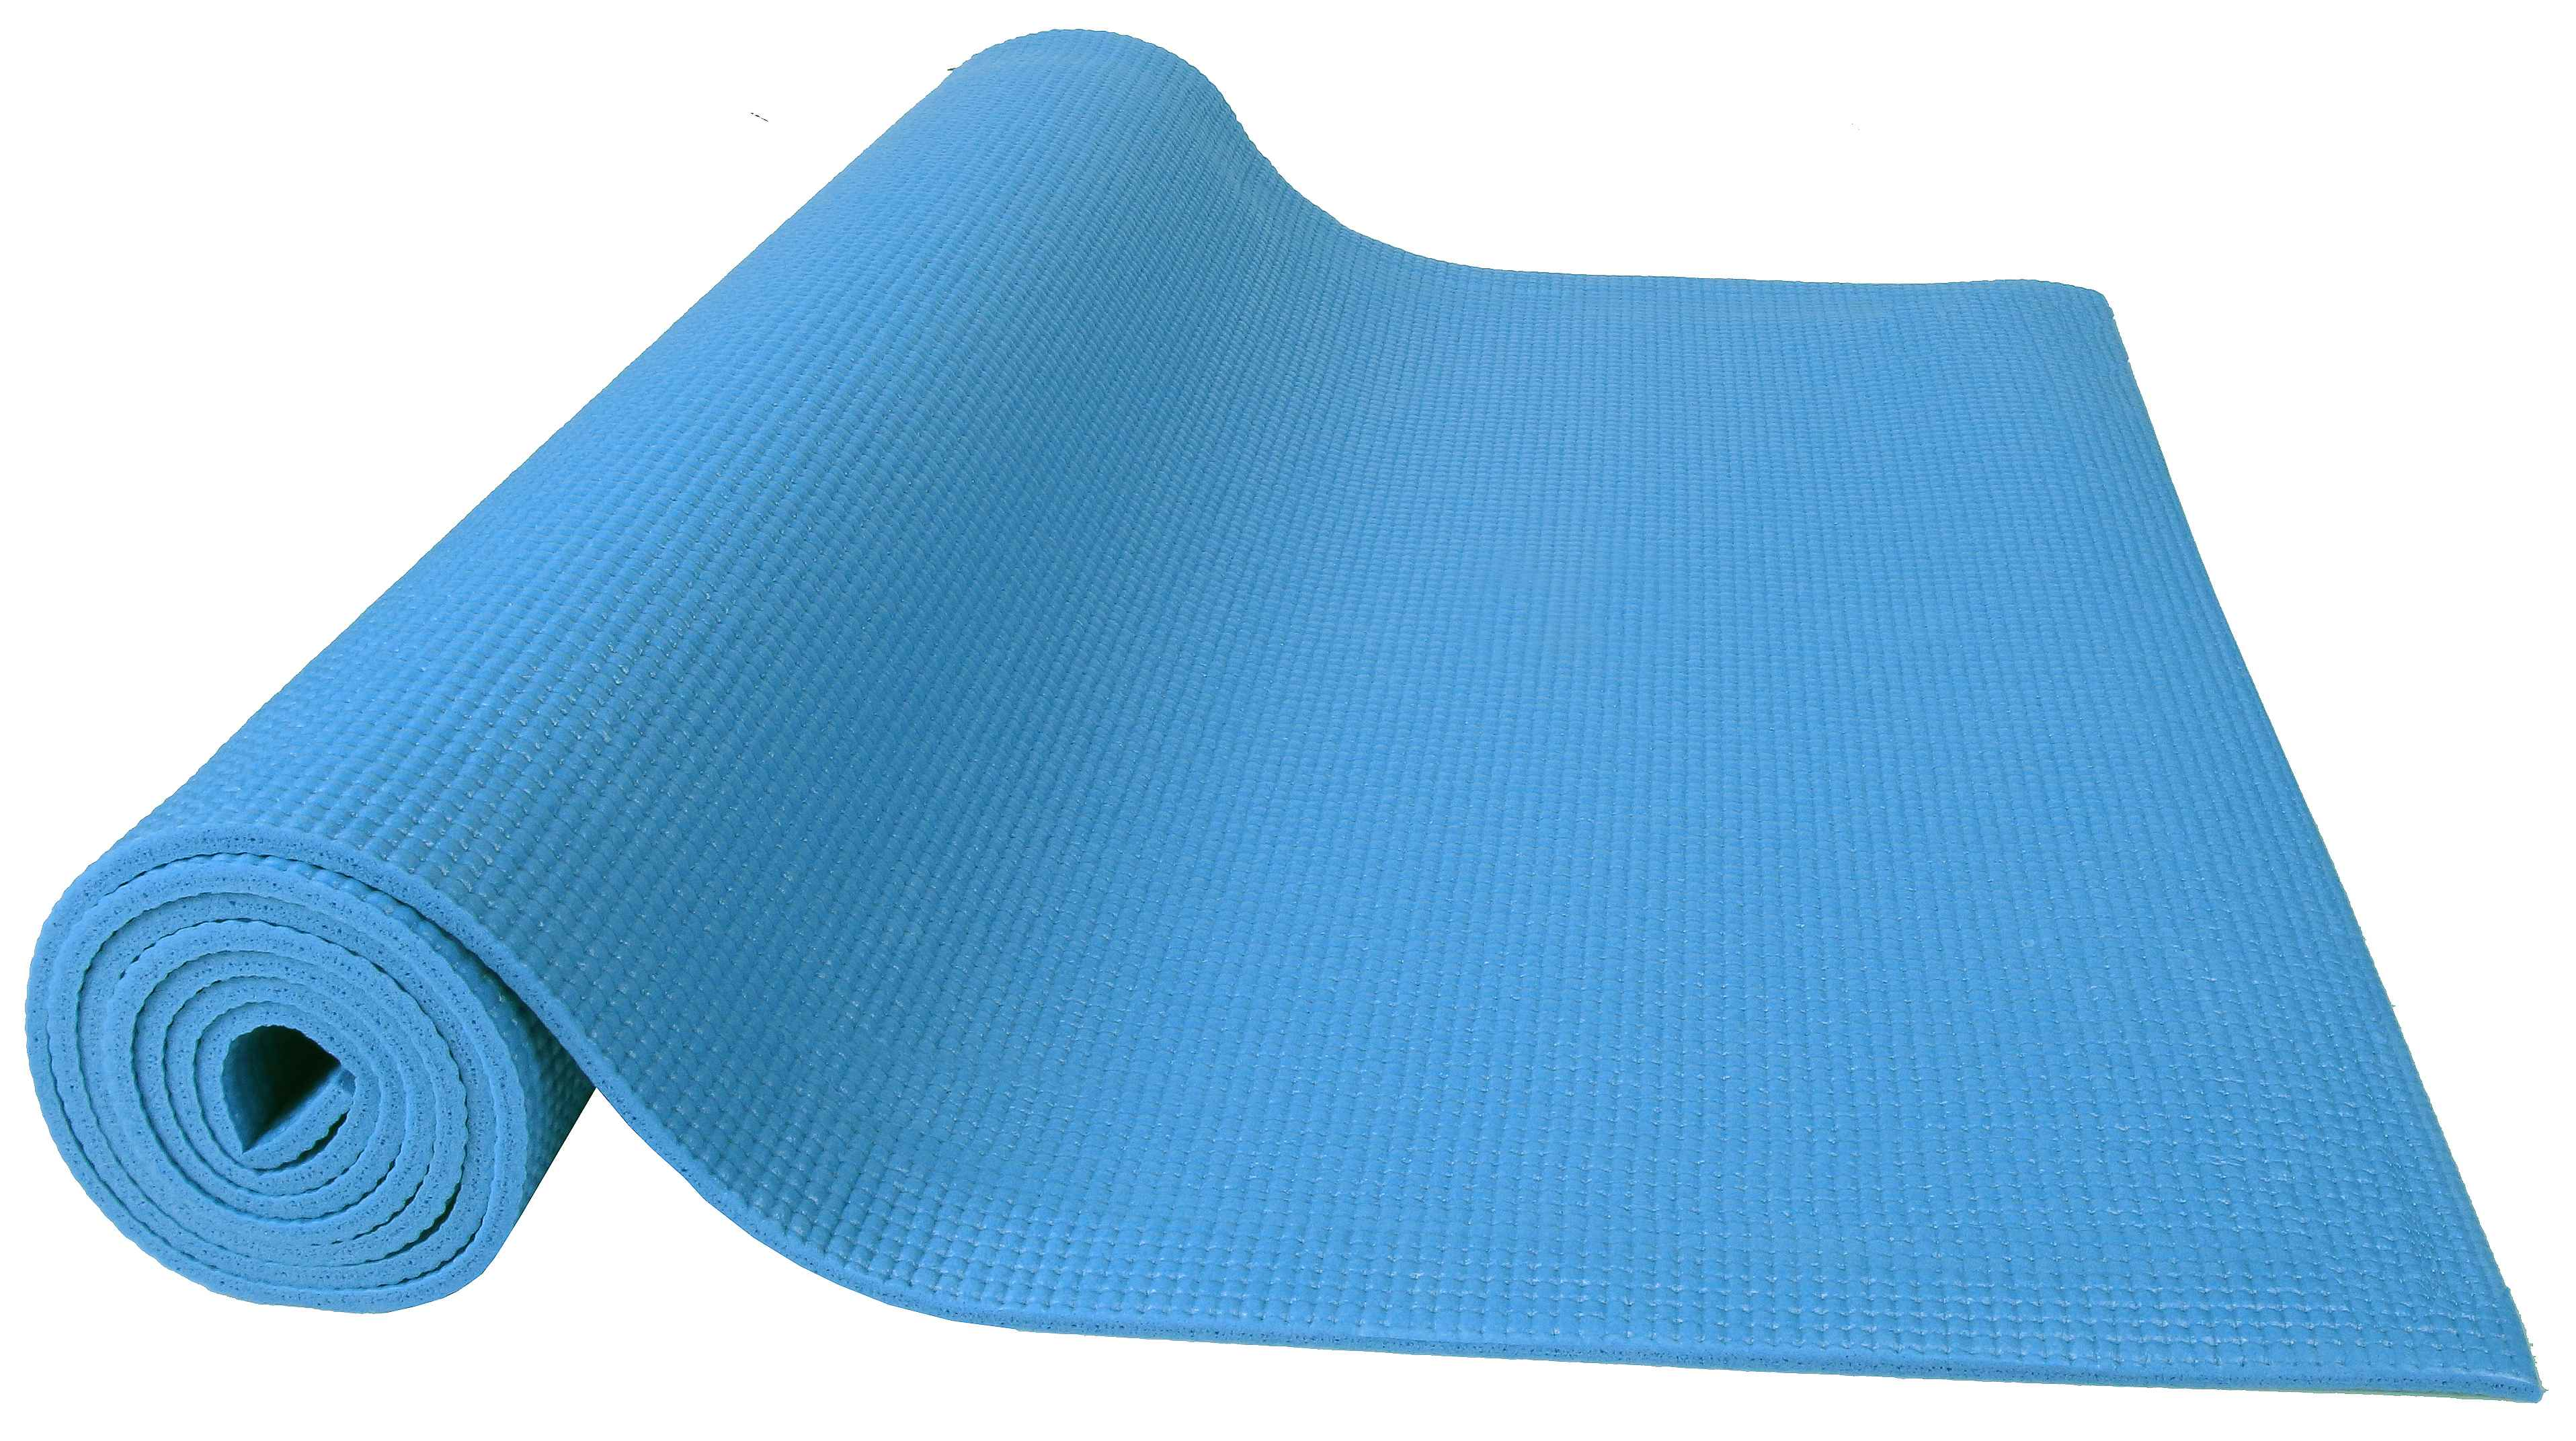 [US Direct] Original BalanceFrom GoYoga All Purpose High Density Non-Slip Exercise Yoga Mat with Carrying Strap, Blue Blue